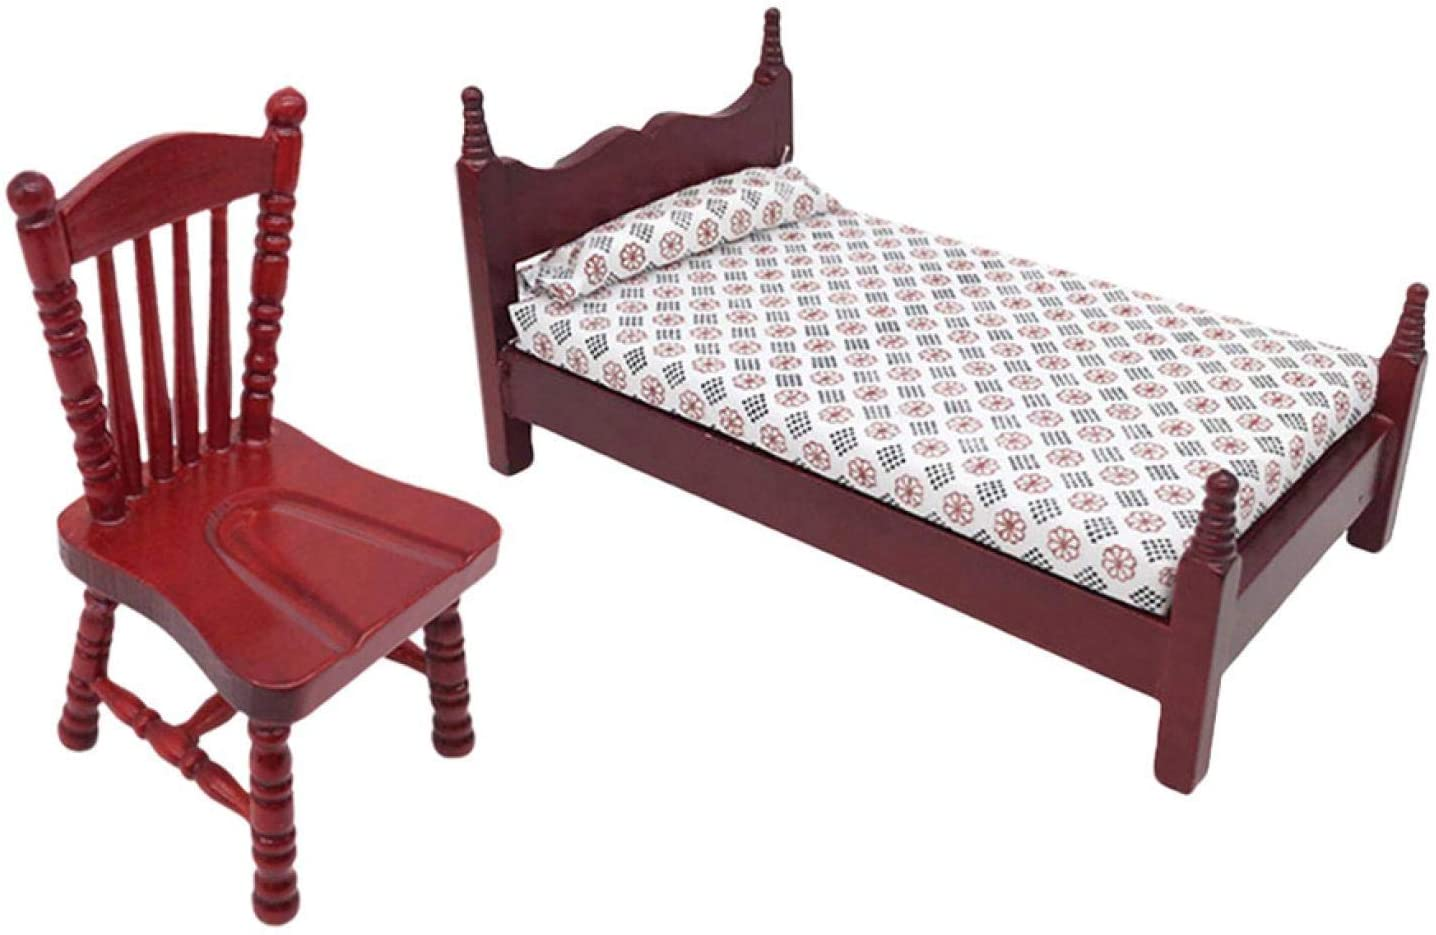 RDTIAN Miniature Rocking Chair + Bed for 1:12 Dollhouse Wooden Furniture Model Set Children's Dollhouse Decoration Home Accessories (Multicolor)